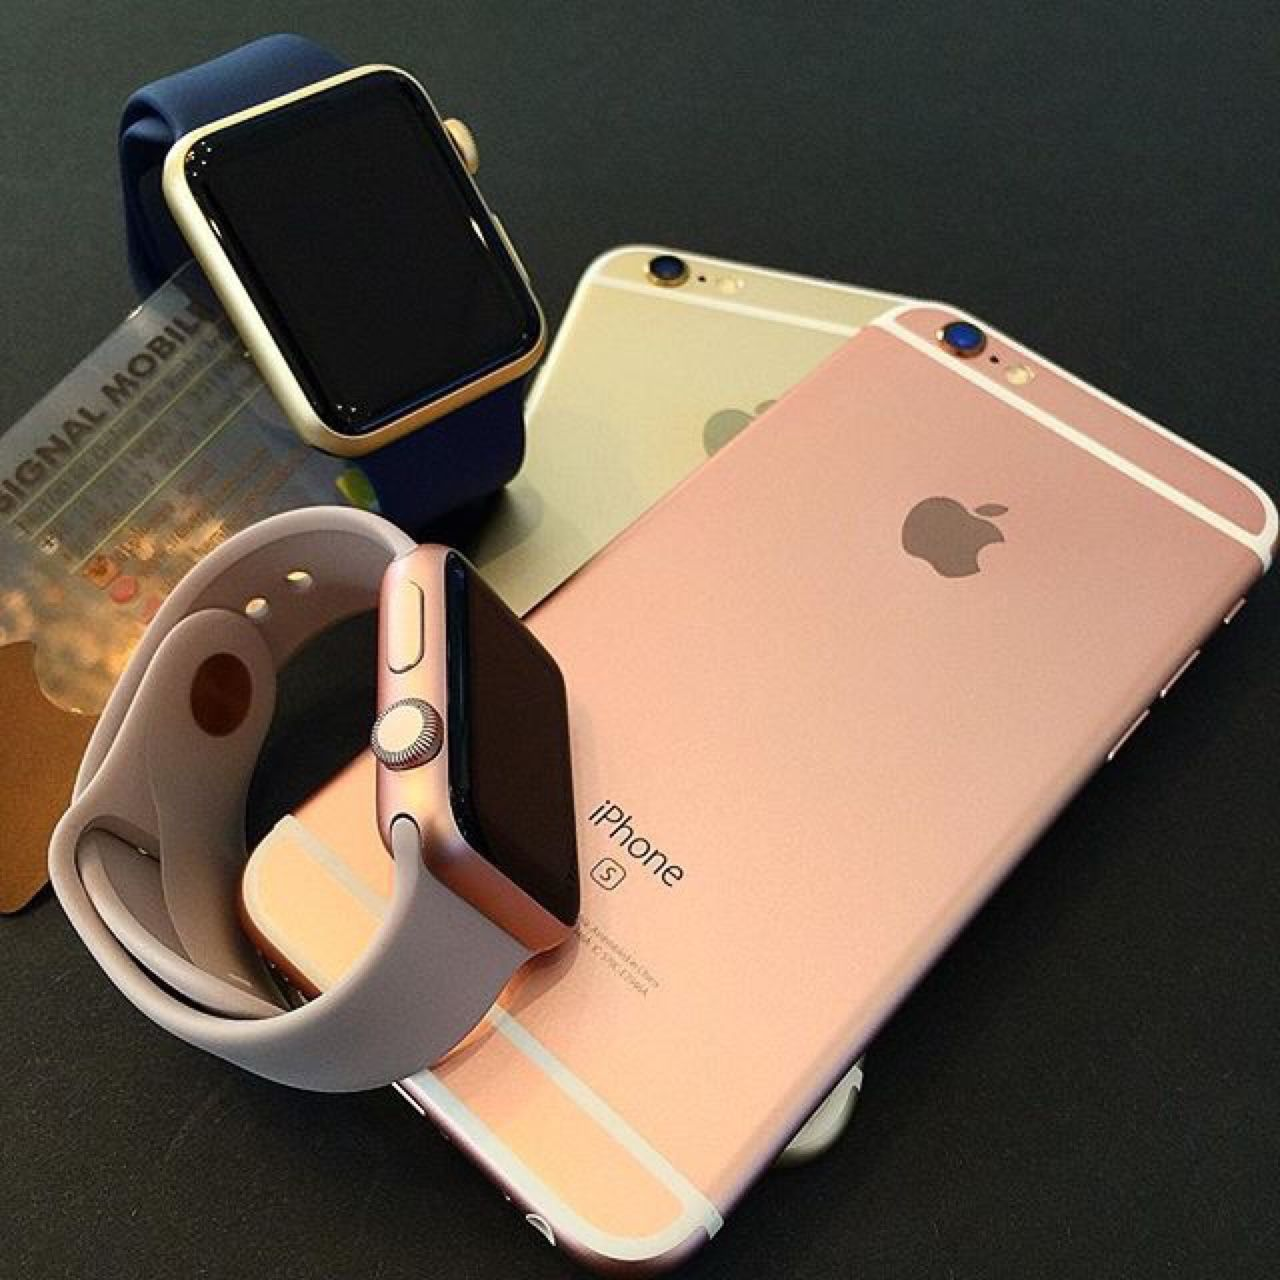 My Moms Phone And Apple Watch Rose Gold Dads